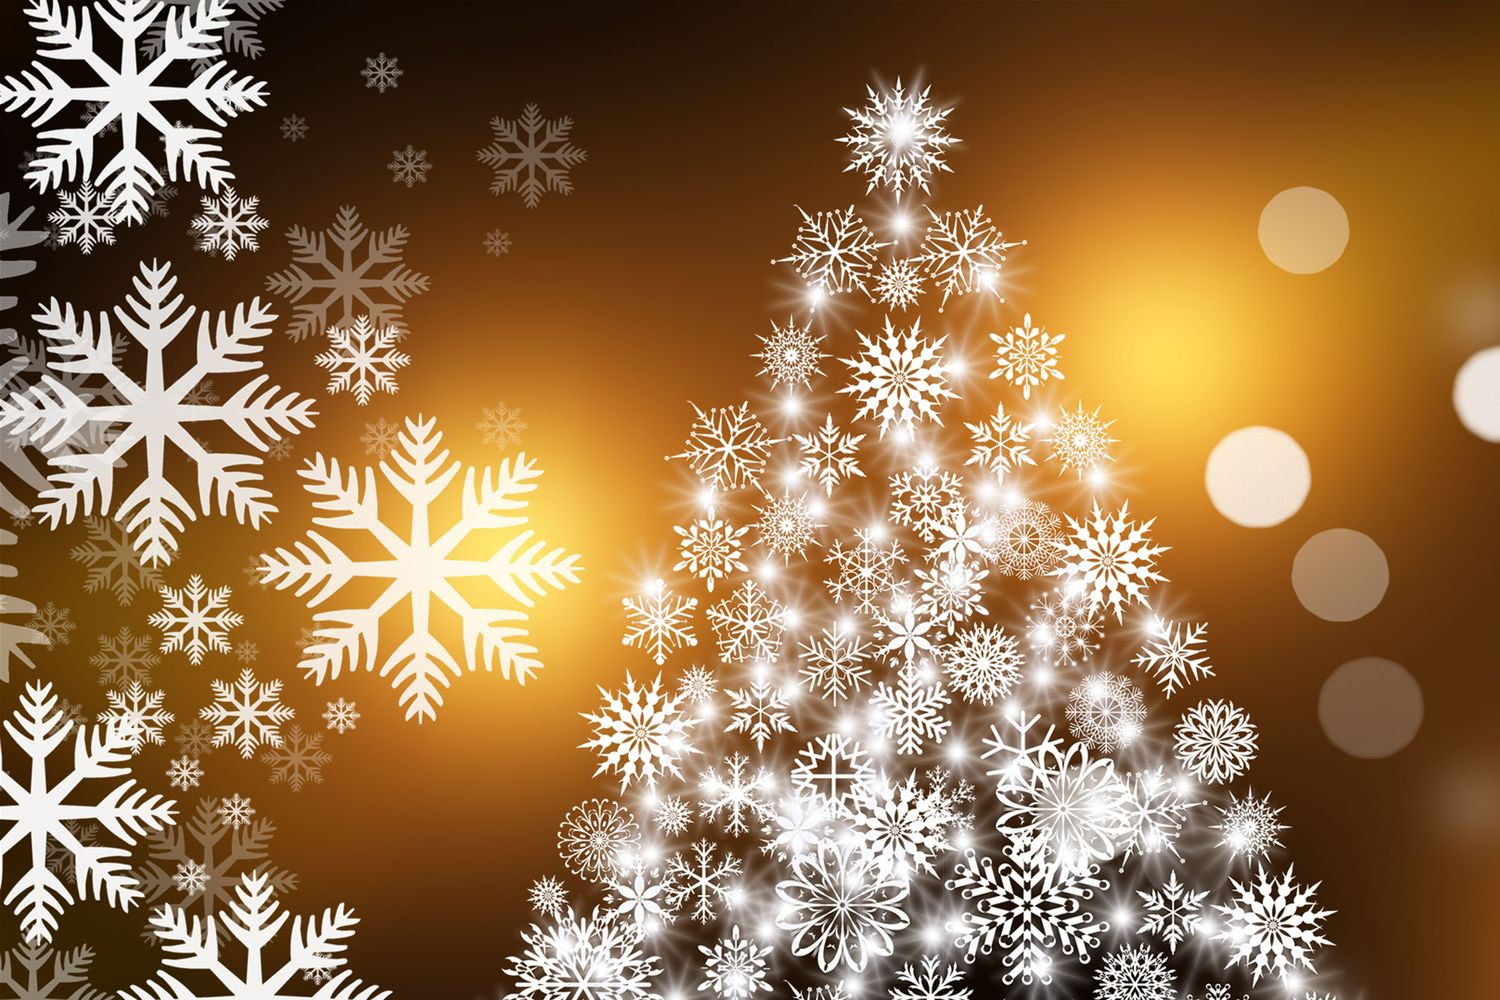 Christmas Tree and Snowflakes © Pixabay